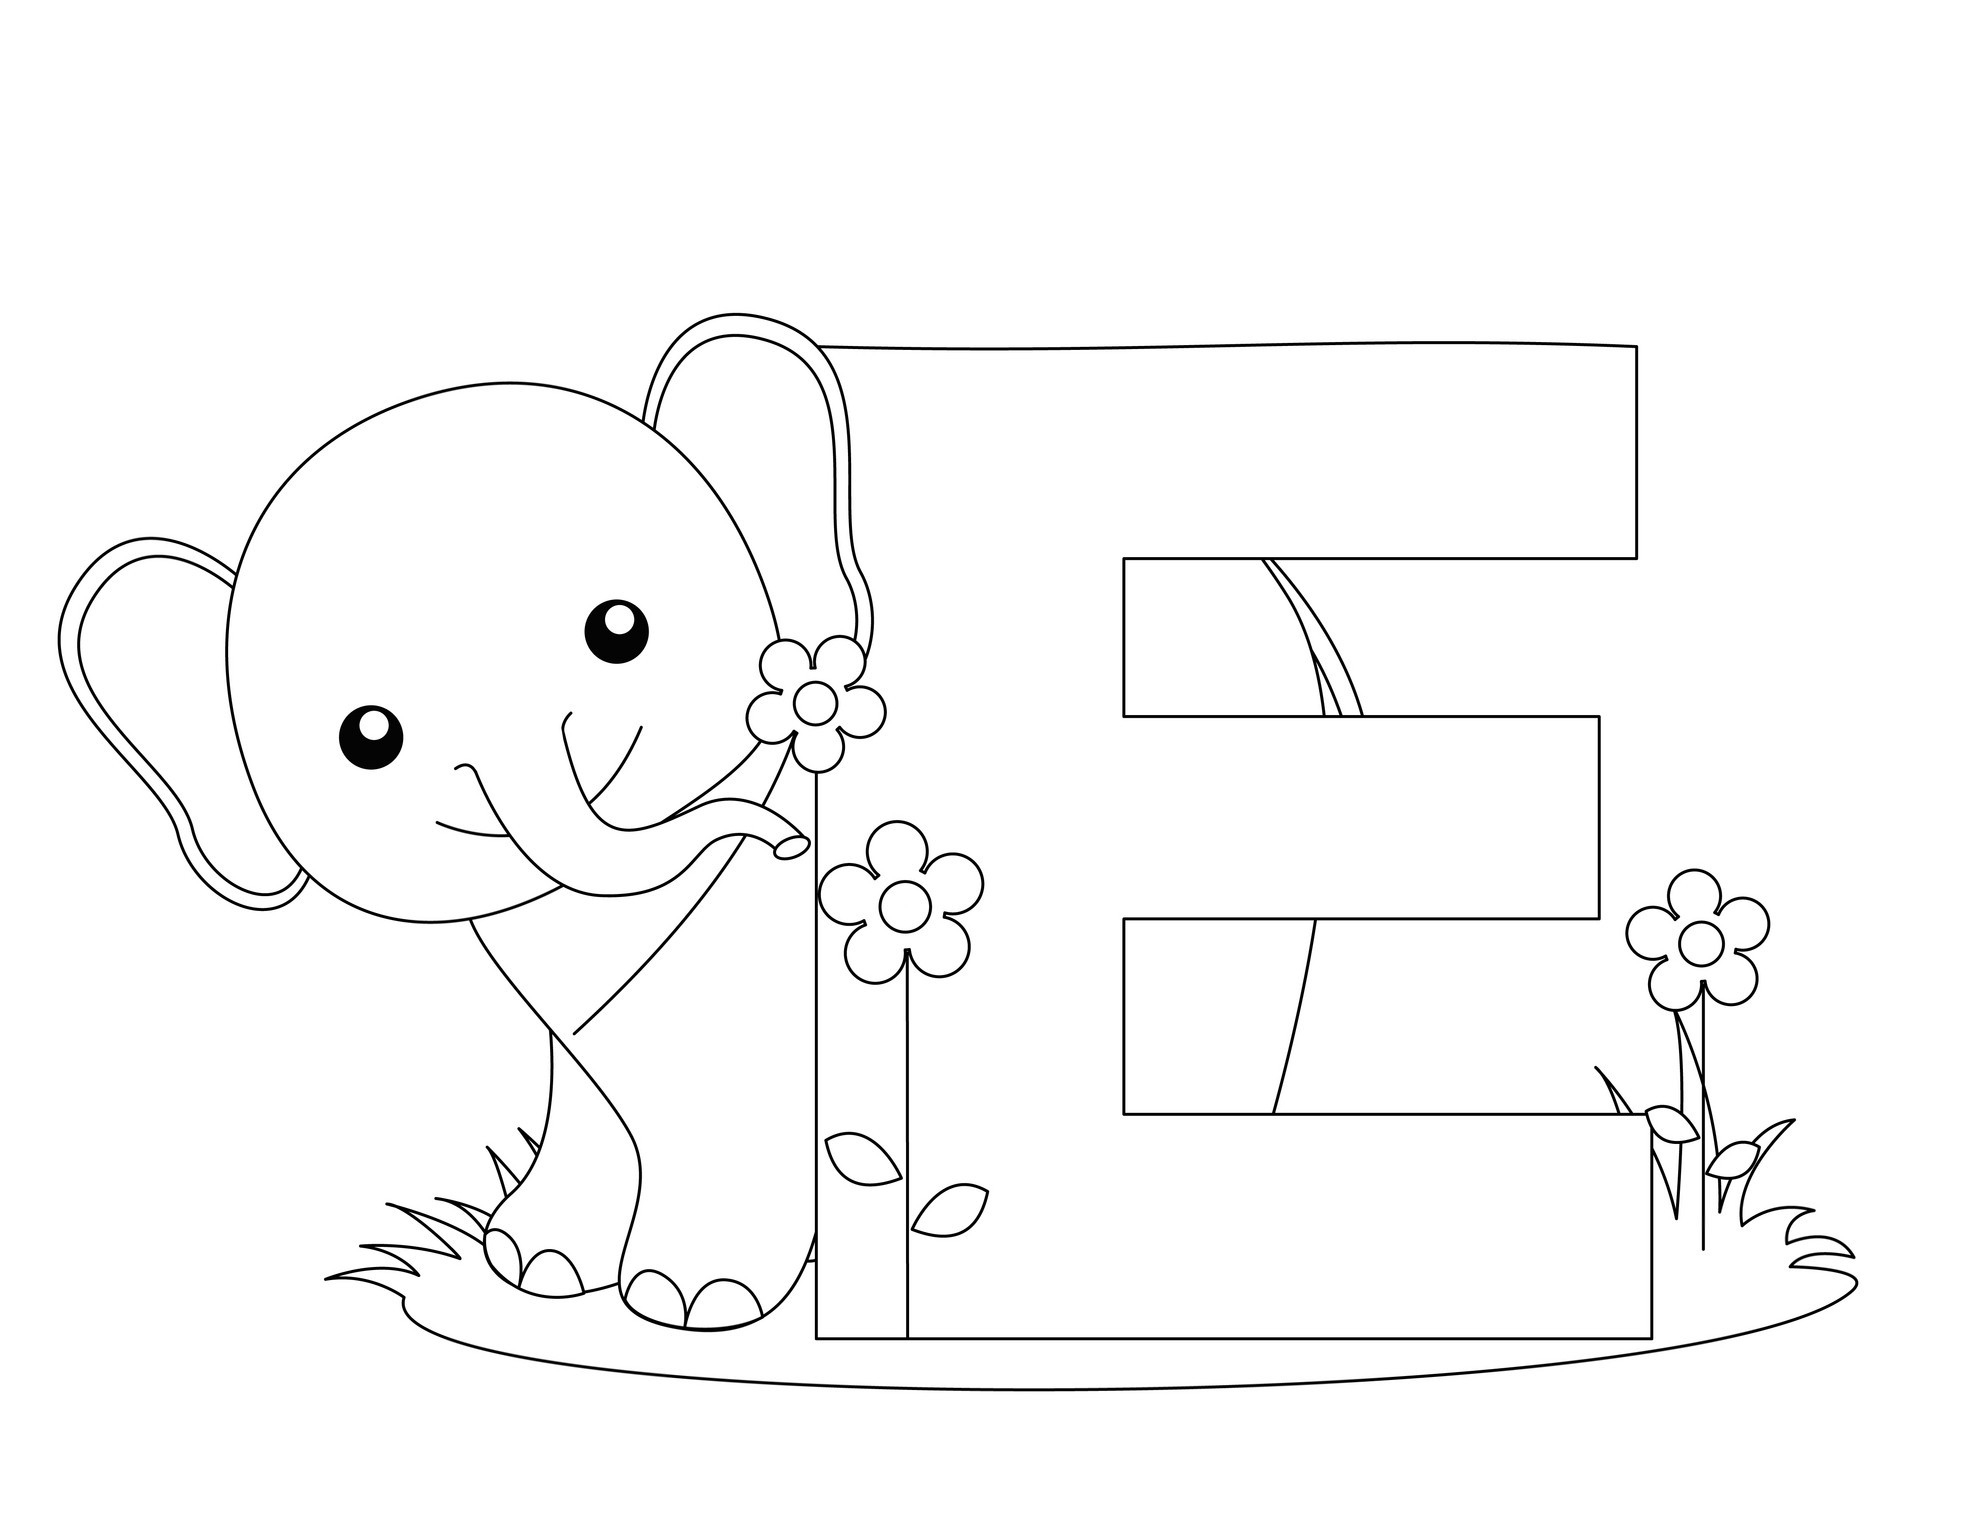 Coloring Book ~ Letter Coloring Pages Free Printable with Alphabet Coloring Worksheets For Preschoolers